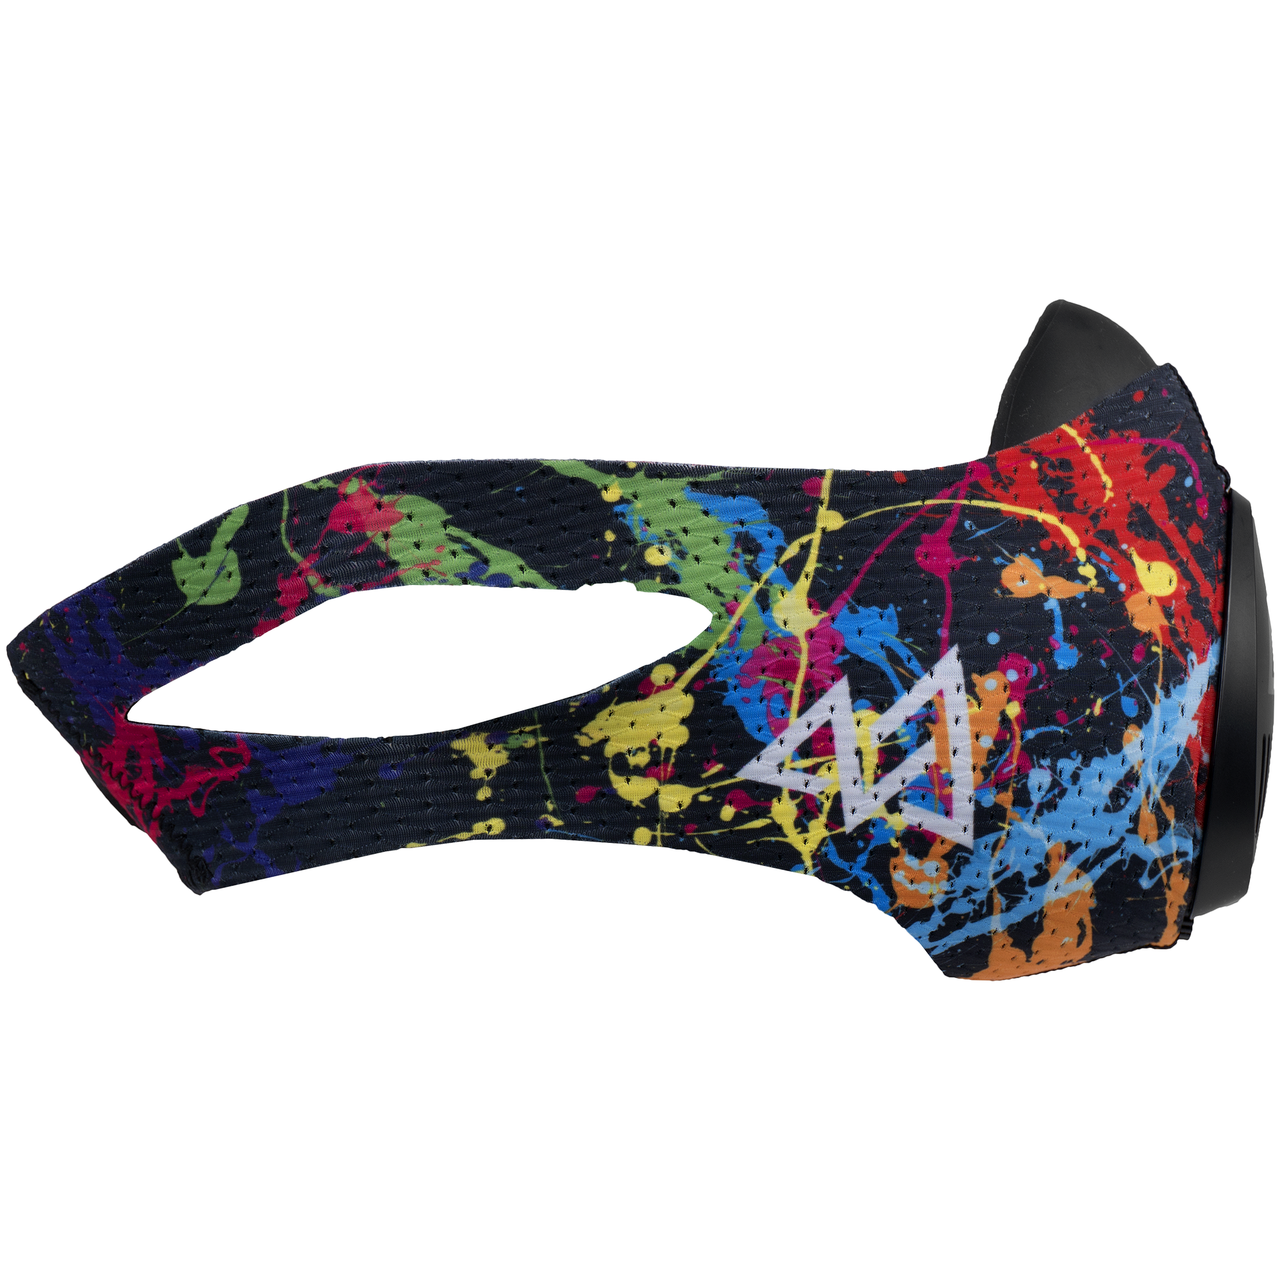 Training Mask 3.0 Black Splatter Sleeve